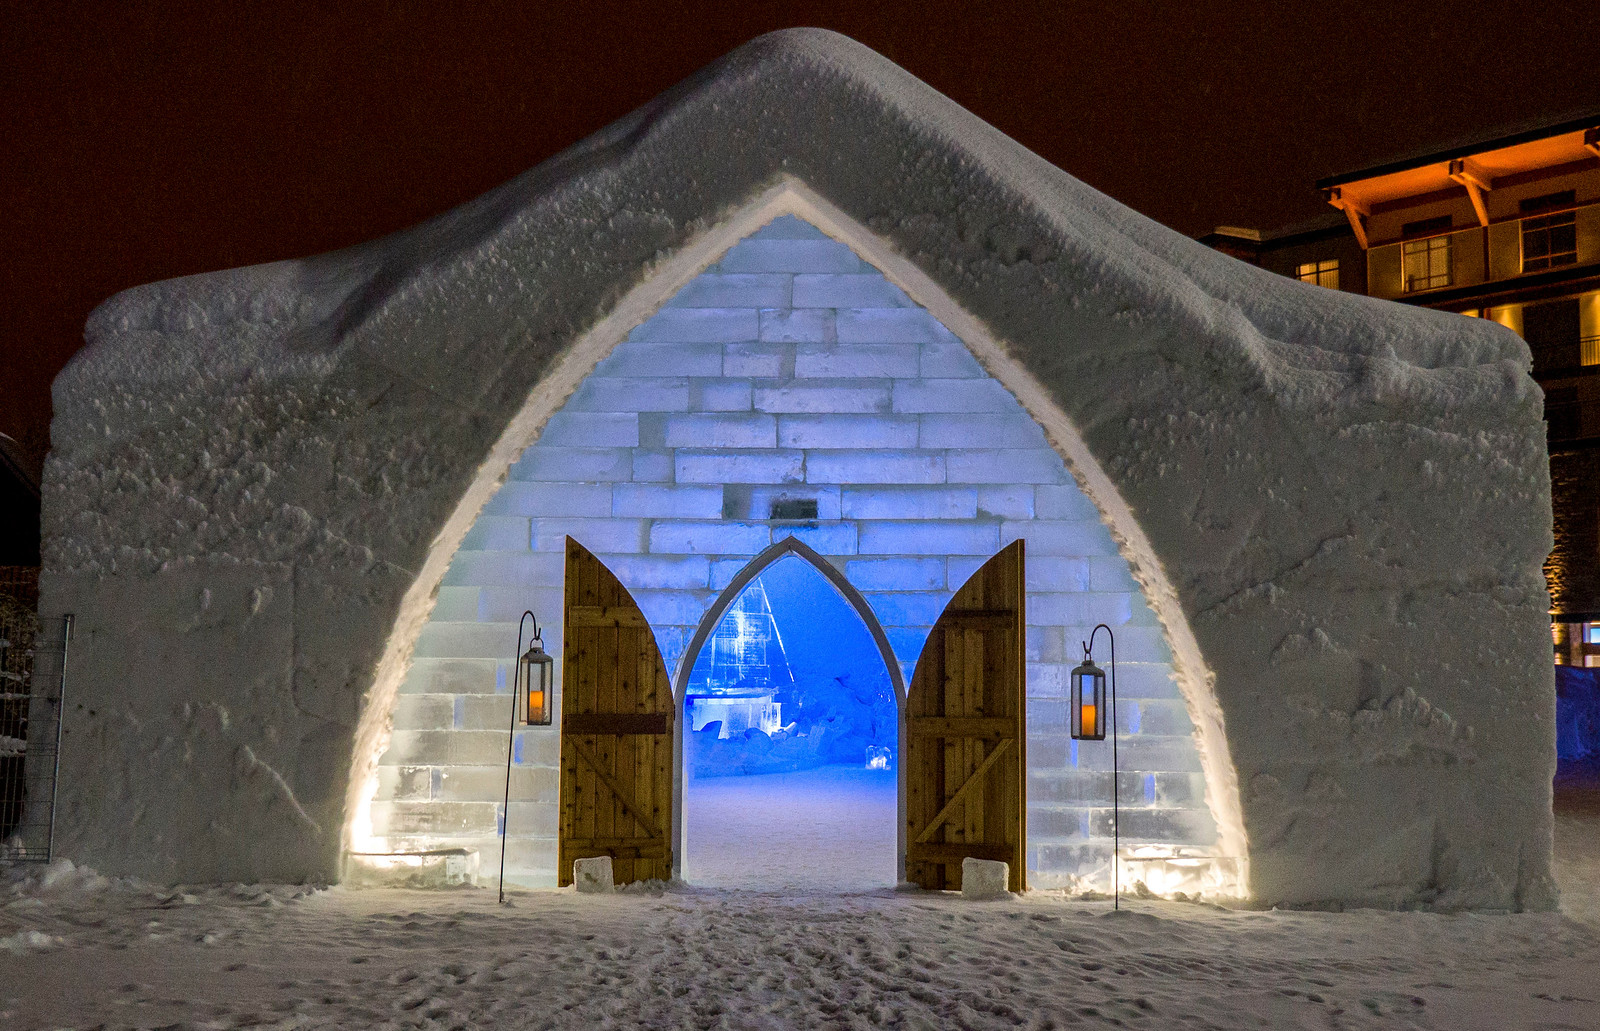 Ice Hotel Quebec: An Insider's Guide to Surviving the Night - Ice Chapel